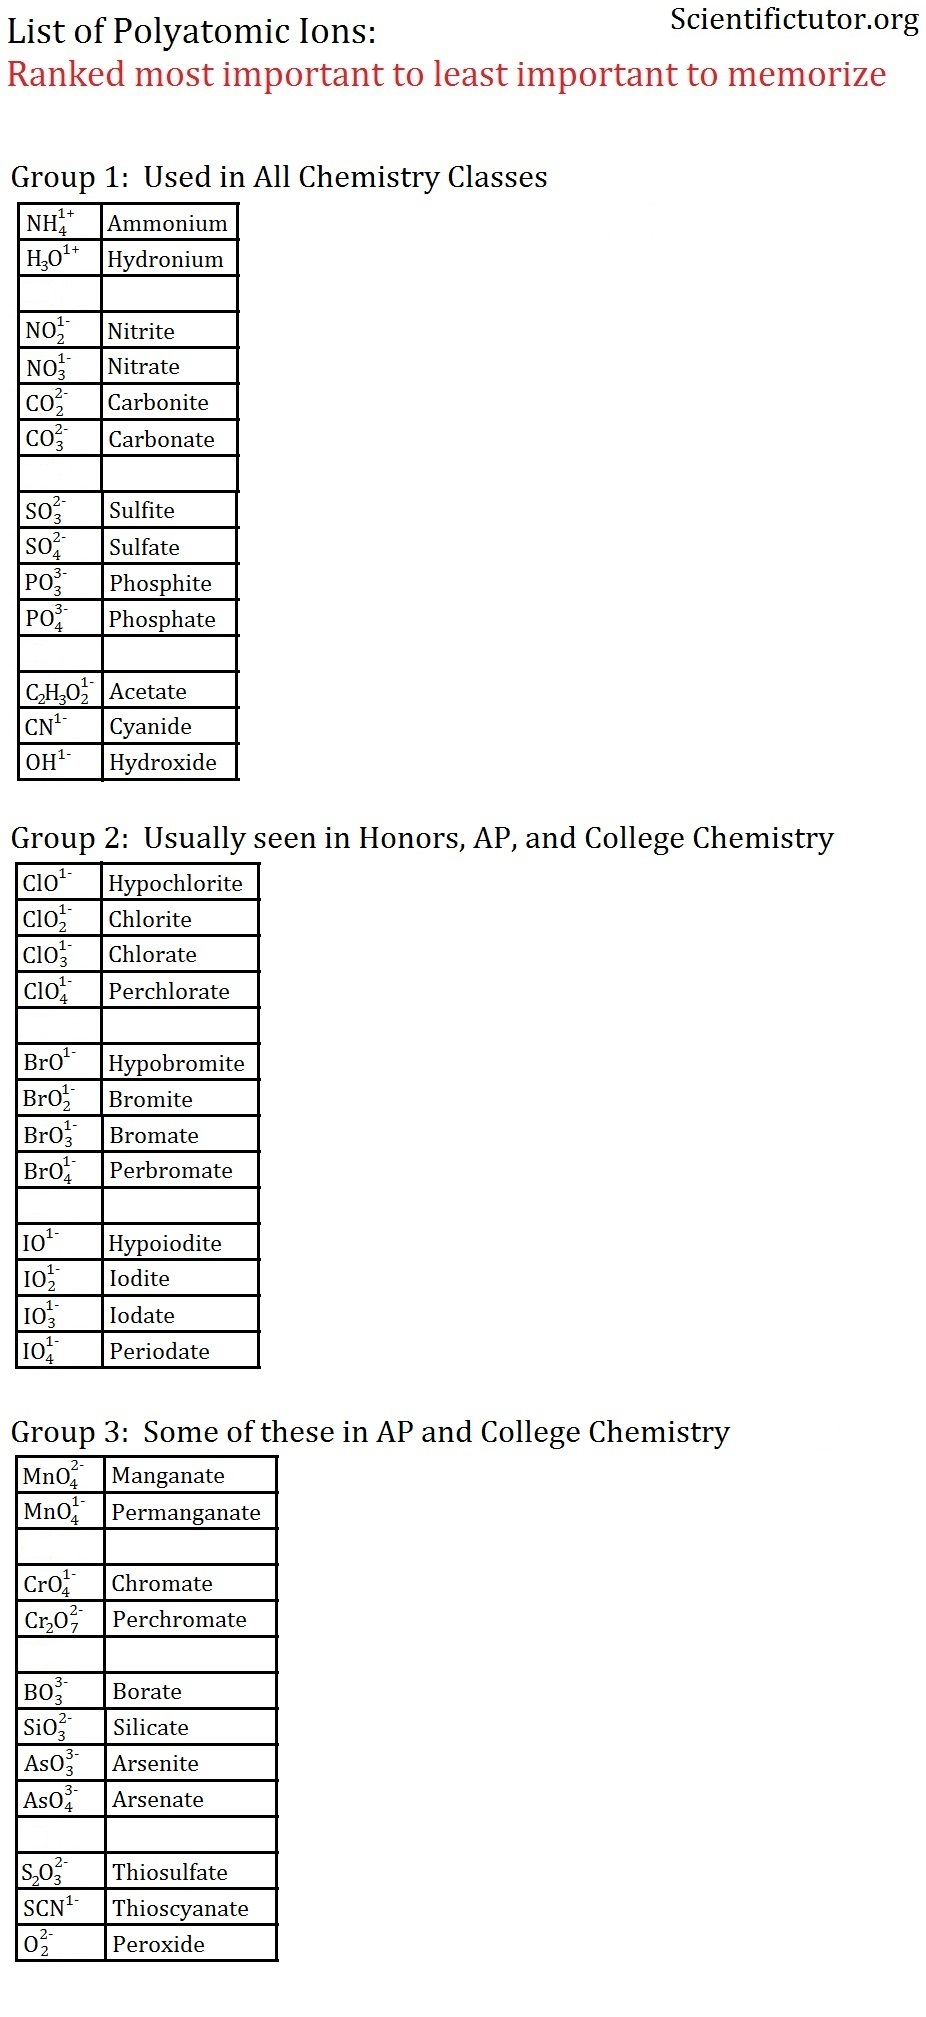 Worksheets Naming Ionic Compounds Worksheet 1 chem naming ionic compounds with polyatomic ions part 1 name of the chemical compound create formula using a regular periodic table dont forget to use ion peri